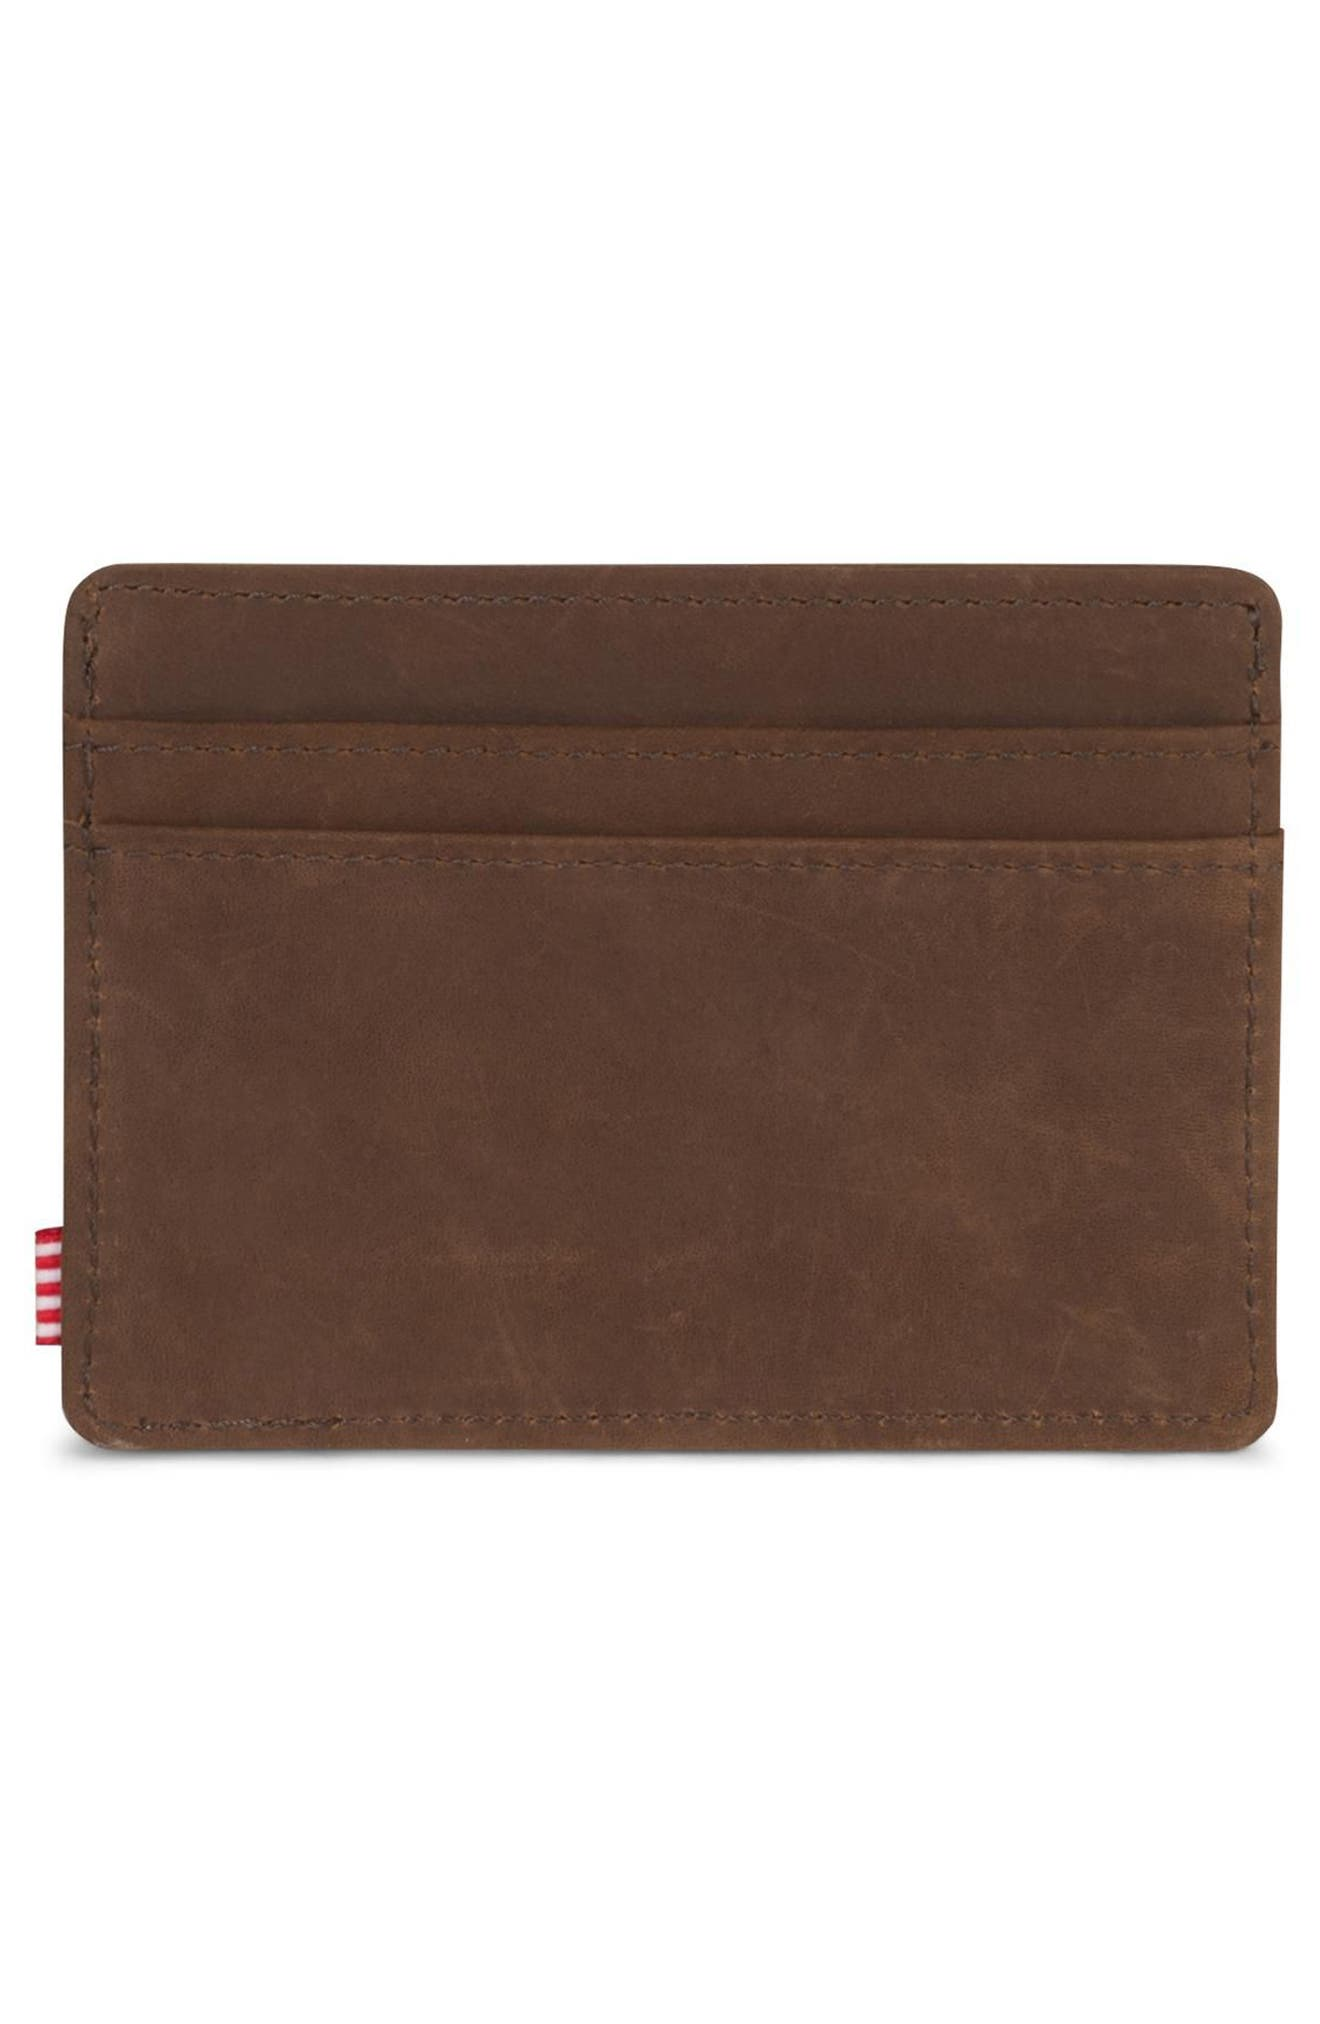 Charlie Nubuck Leather Card Case,                             Alternate thumbnail 2, color,                             NUBUCK BROWN